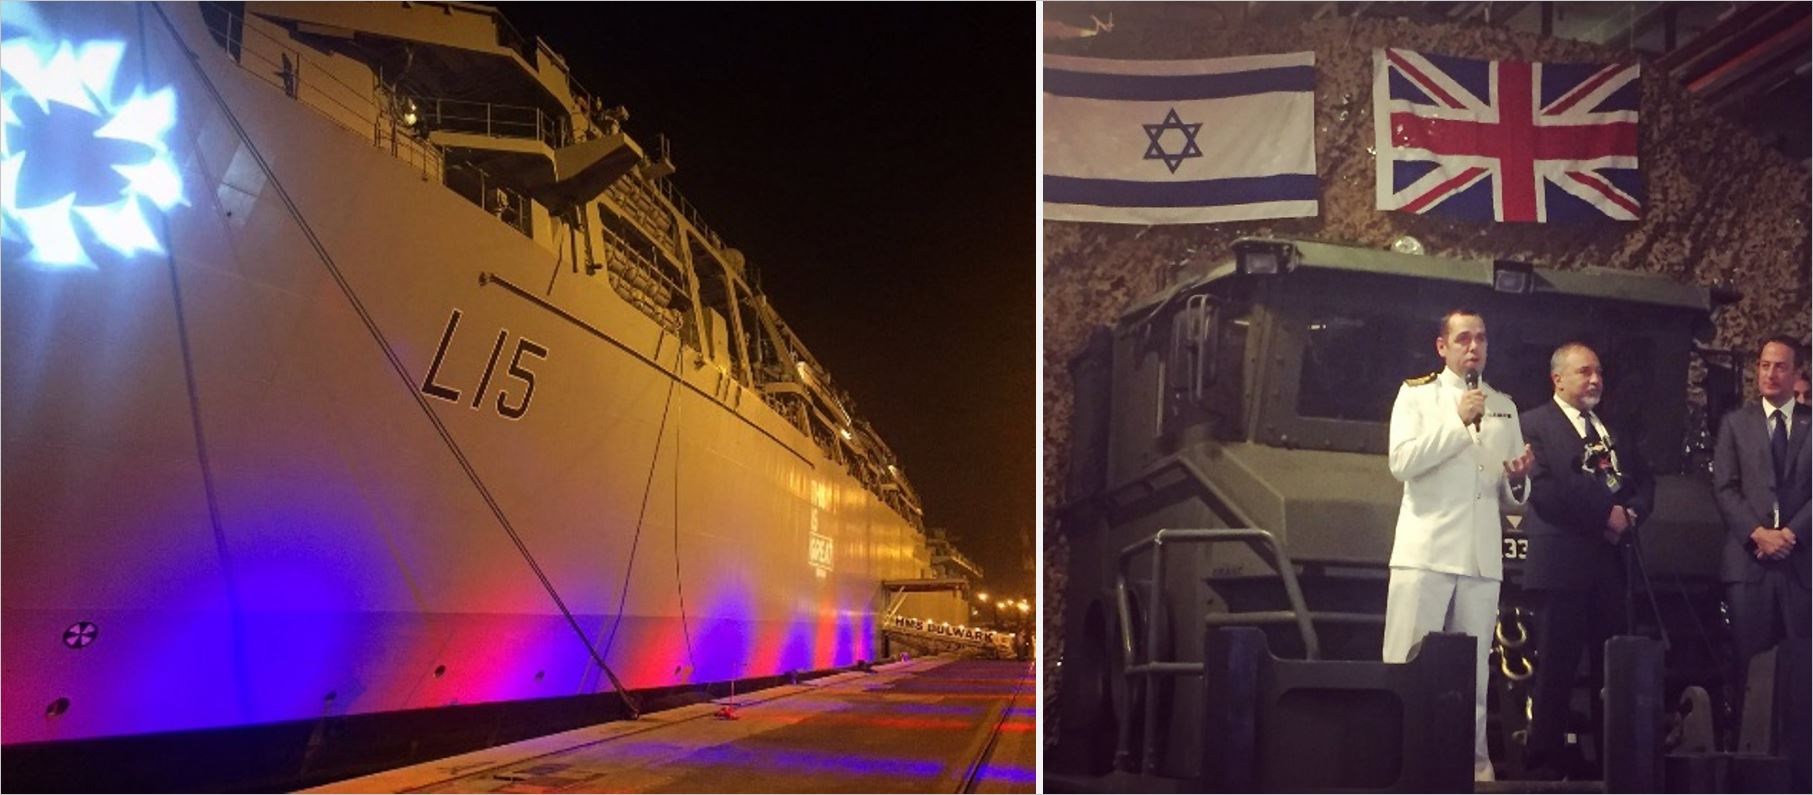 HMS Bulwark docks in Haifa, proclaiming strength of UK-Israel defence ties